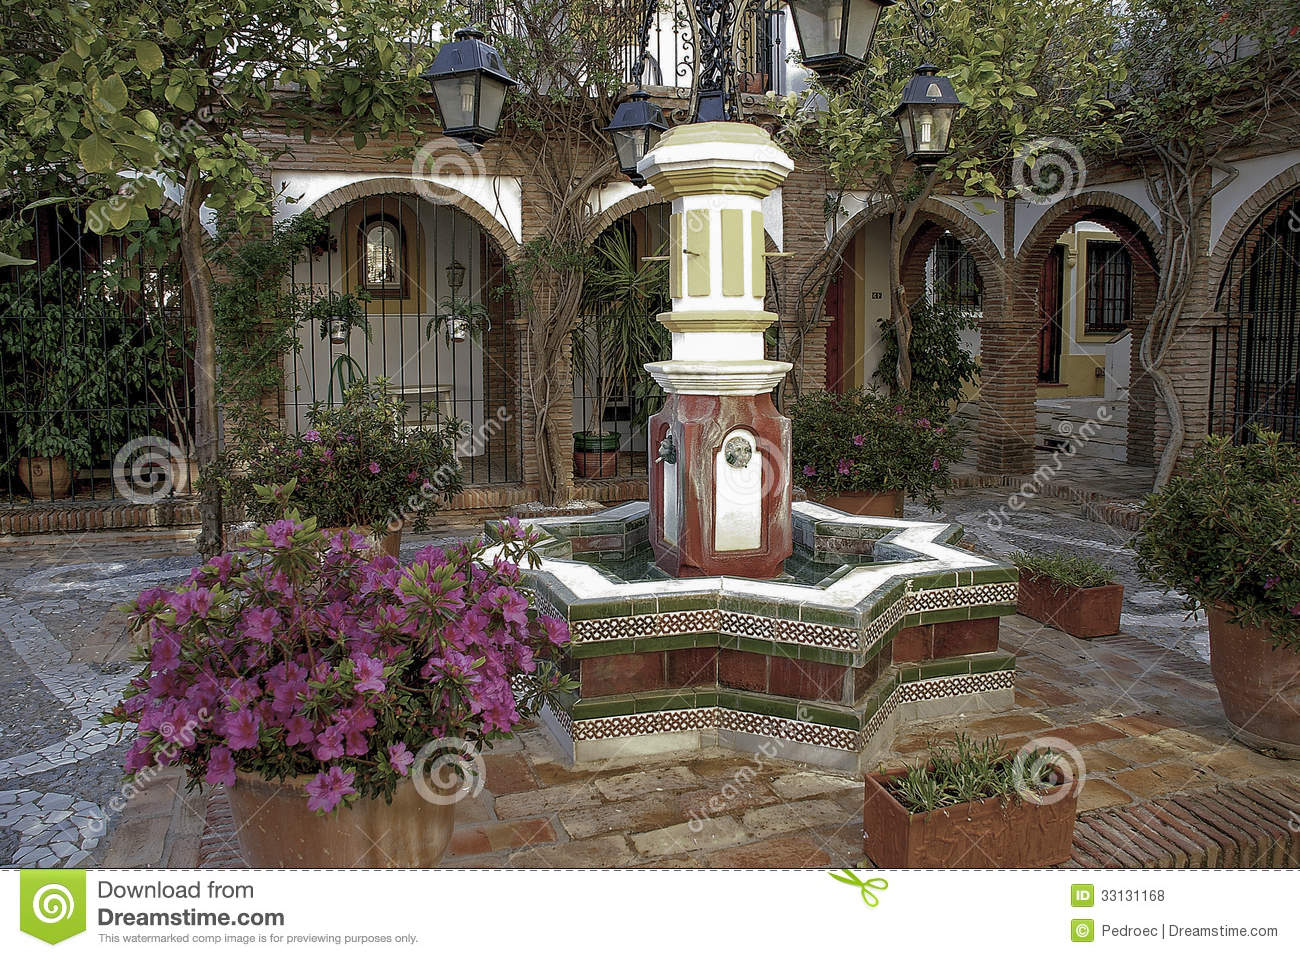 Andalusian Patio Royalty Free Stock Photos Image 33131168 : andalusian patio typical ornate spanish 33131168 <strong>Sitting in a</strong> Chair from www.dreamstime.com size 1300 x 958 jpeg 332kB